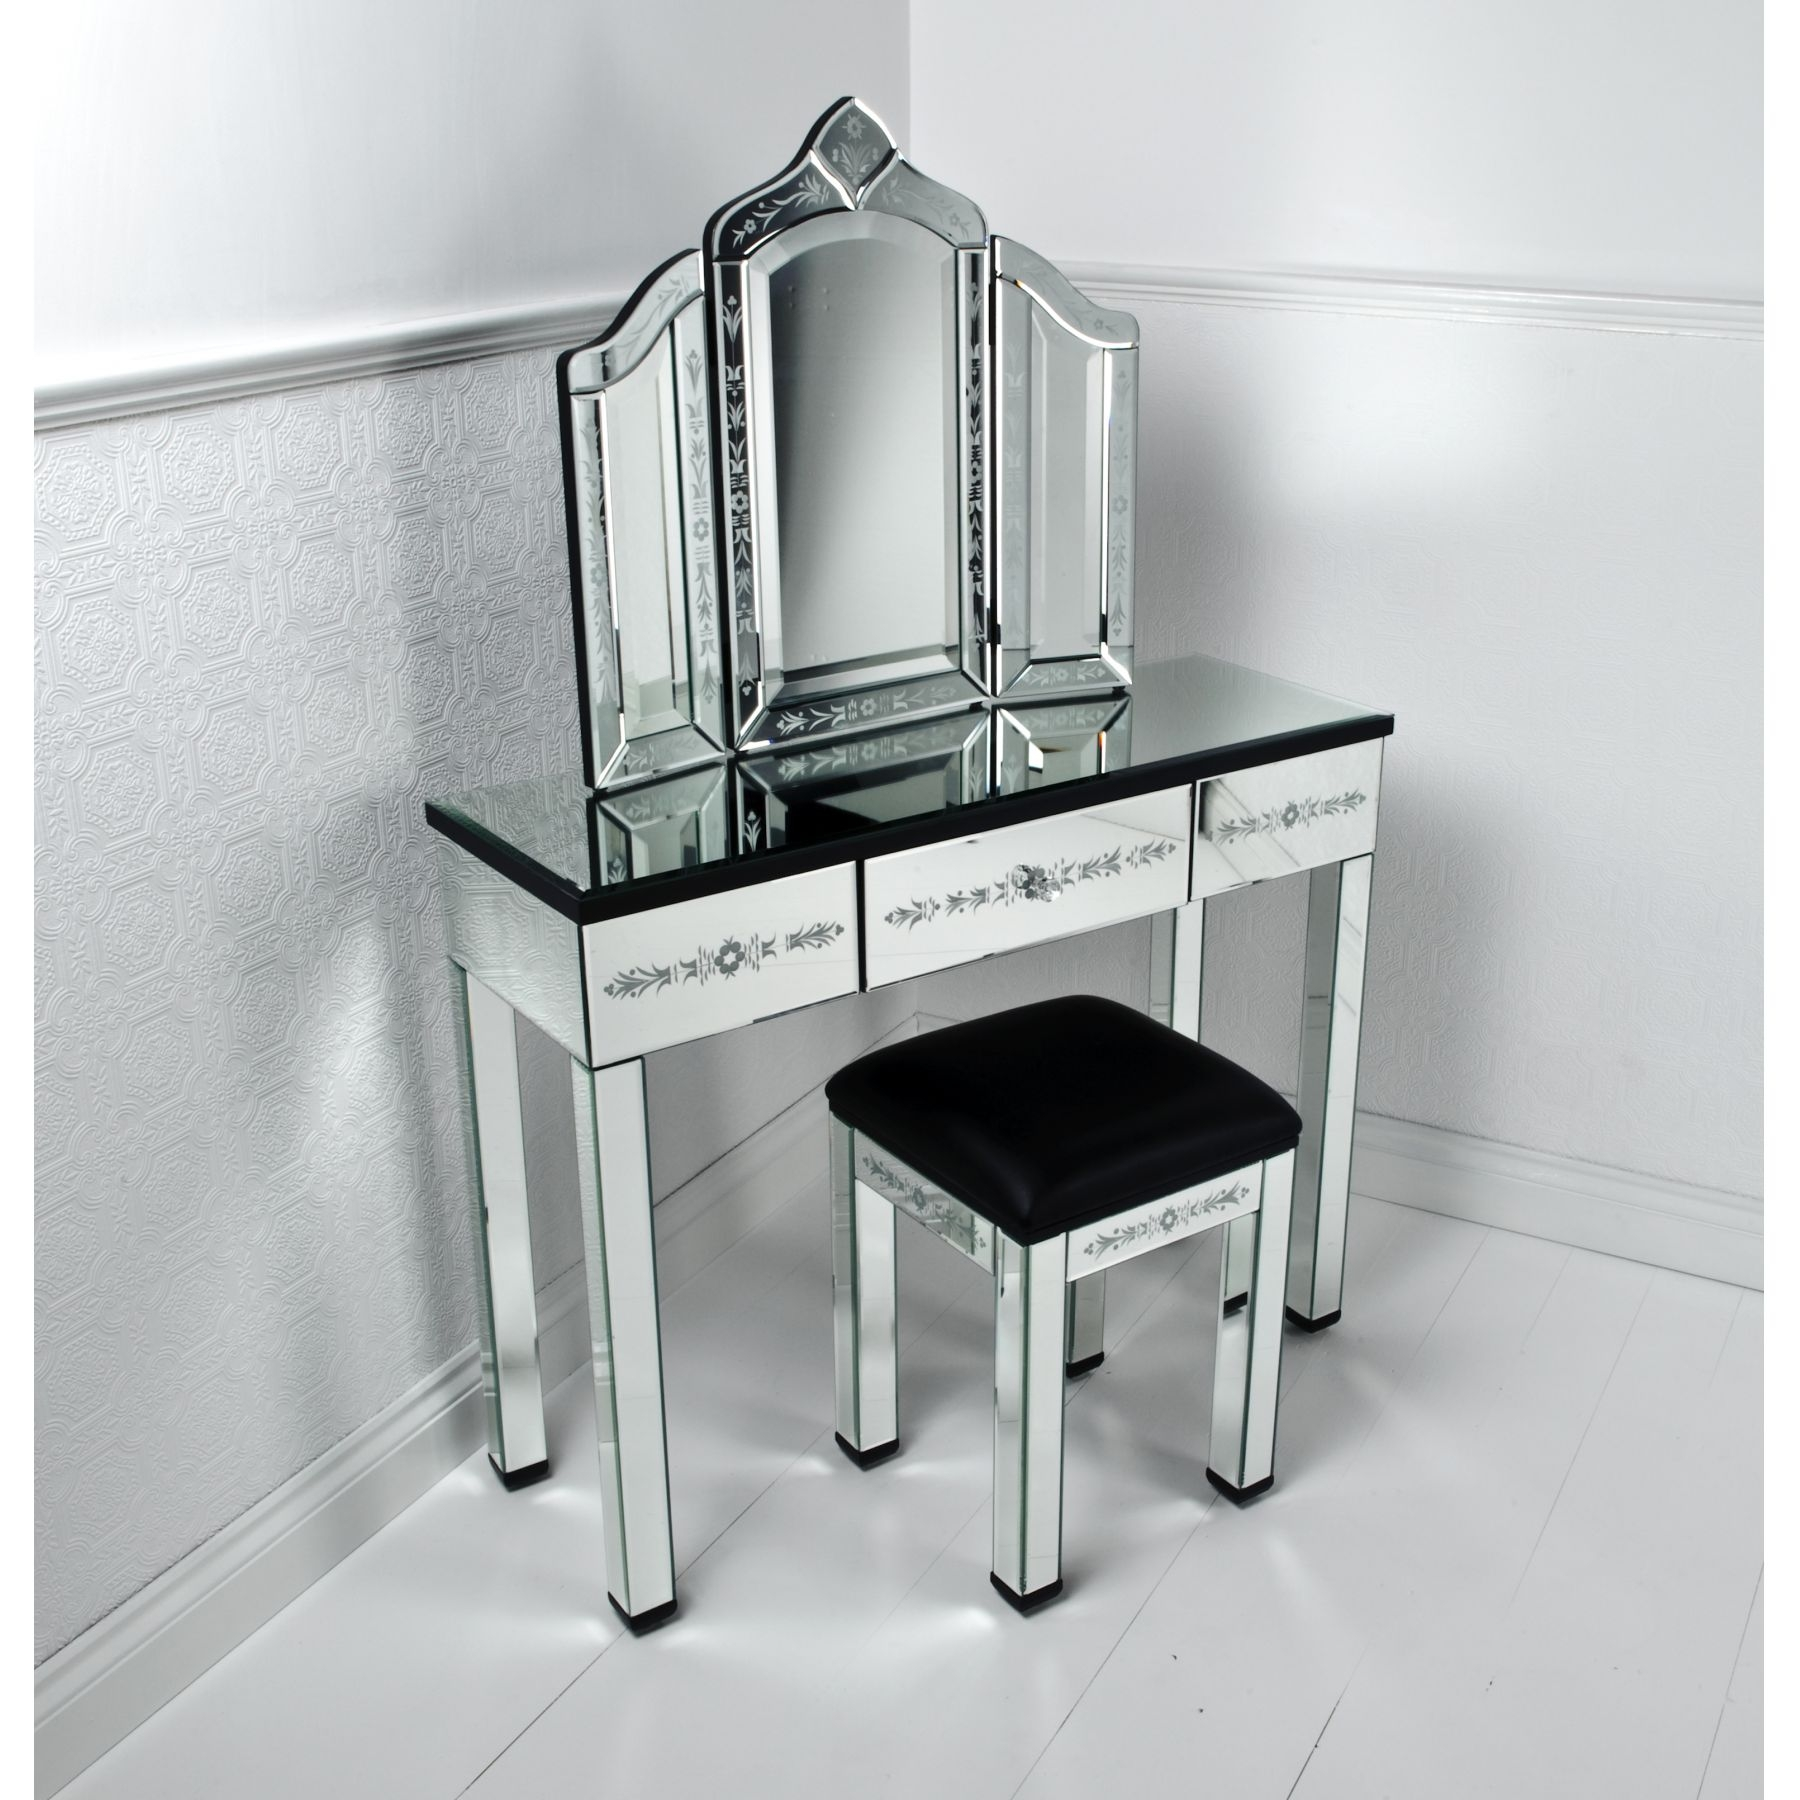 Venetian Mirrored Vanity Makeup Dressing Table Globorank Inside Venetian Table Mirror (Image 14 of 15)